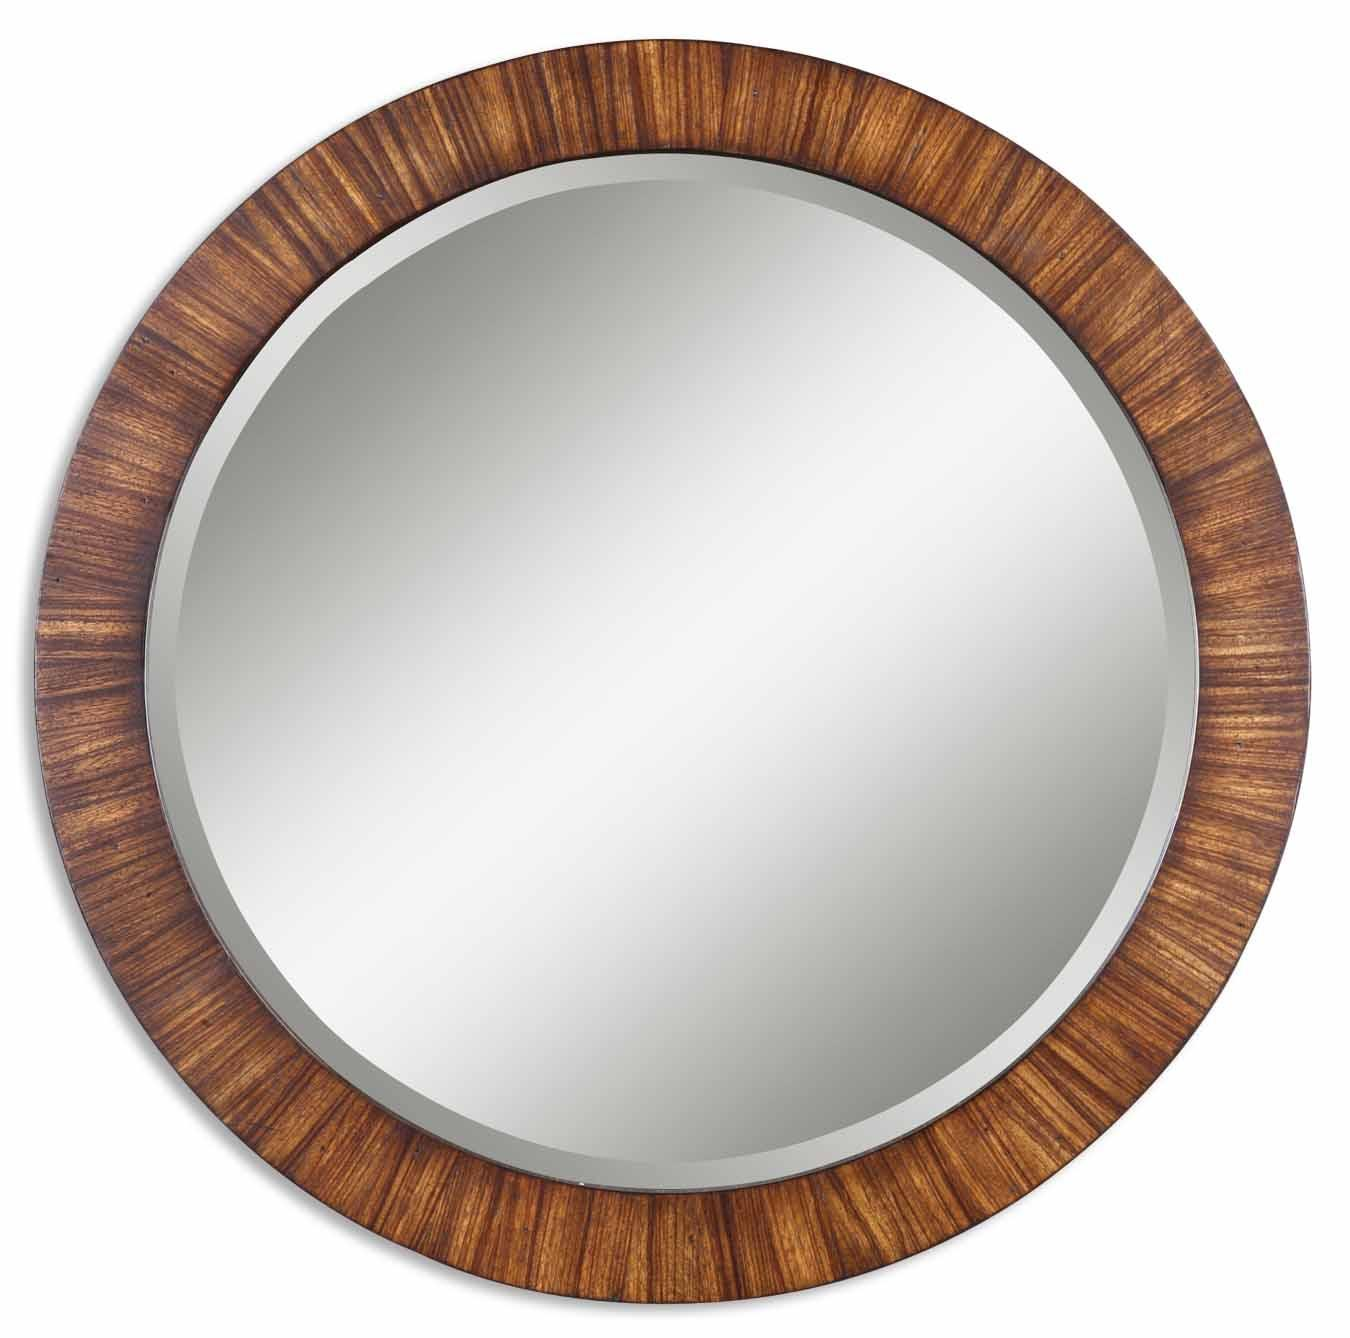 Uttermost Mirrors Jules Mirror - Item Number: 13554 B